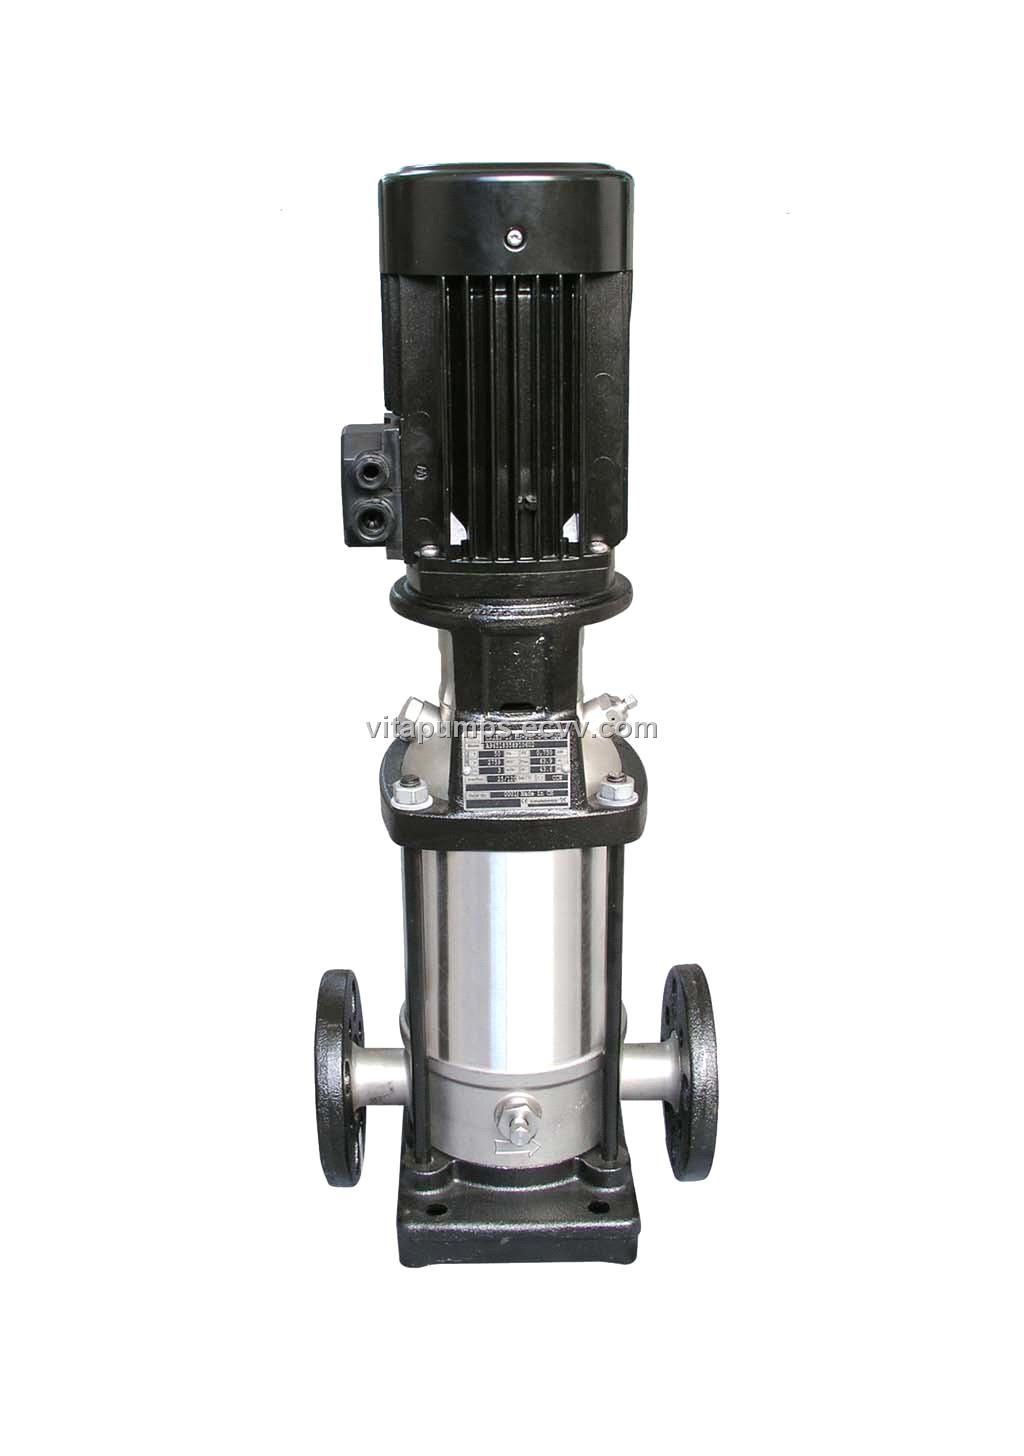 Buy Online Water Pumps In Bangalore Http Www Glowship Com Pumps Html Submersible Pump Solar Water Pump Submersible